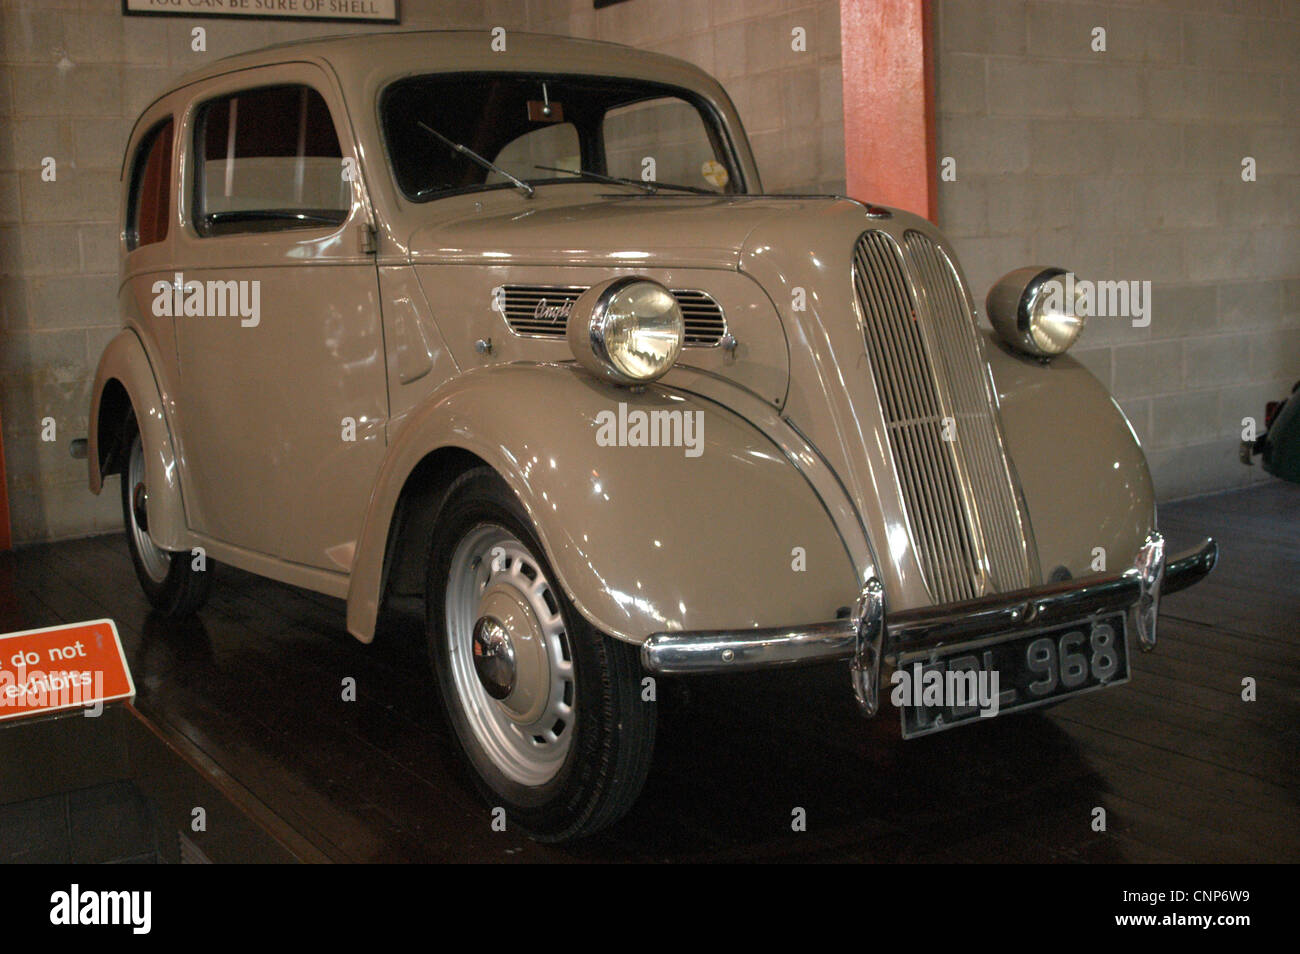 Ford Anglia E494a 1949 Produced By Ford Motor Co Ltd